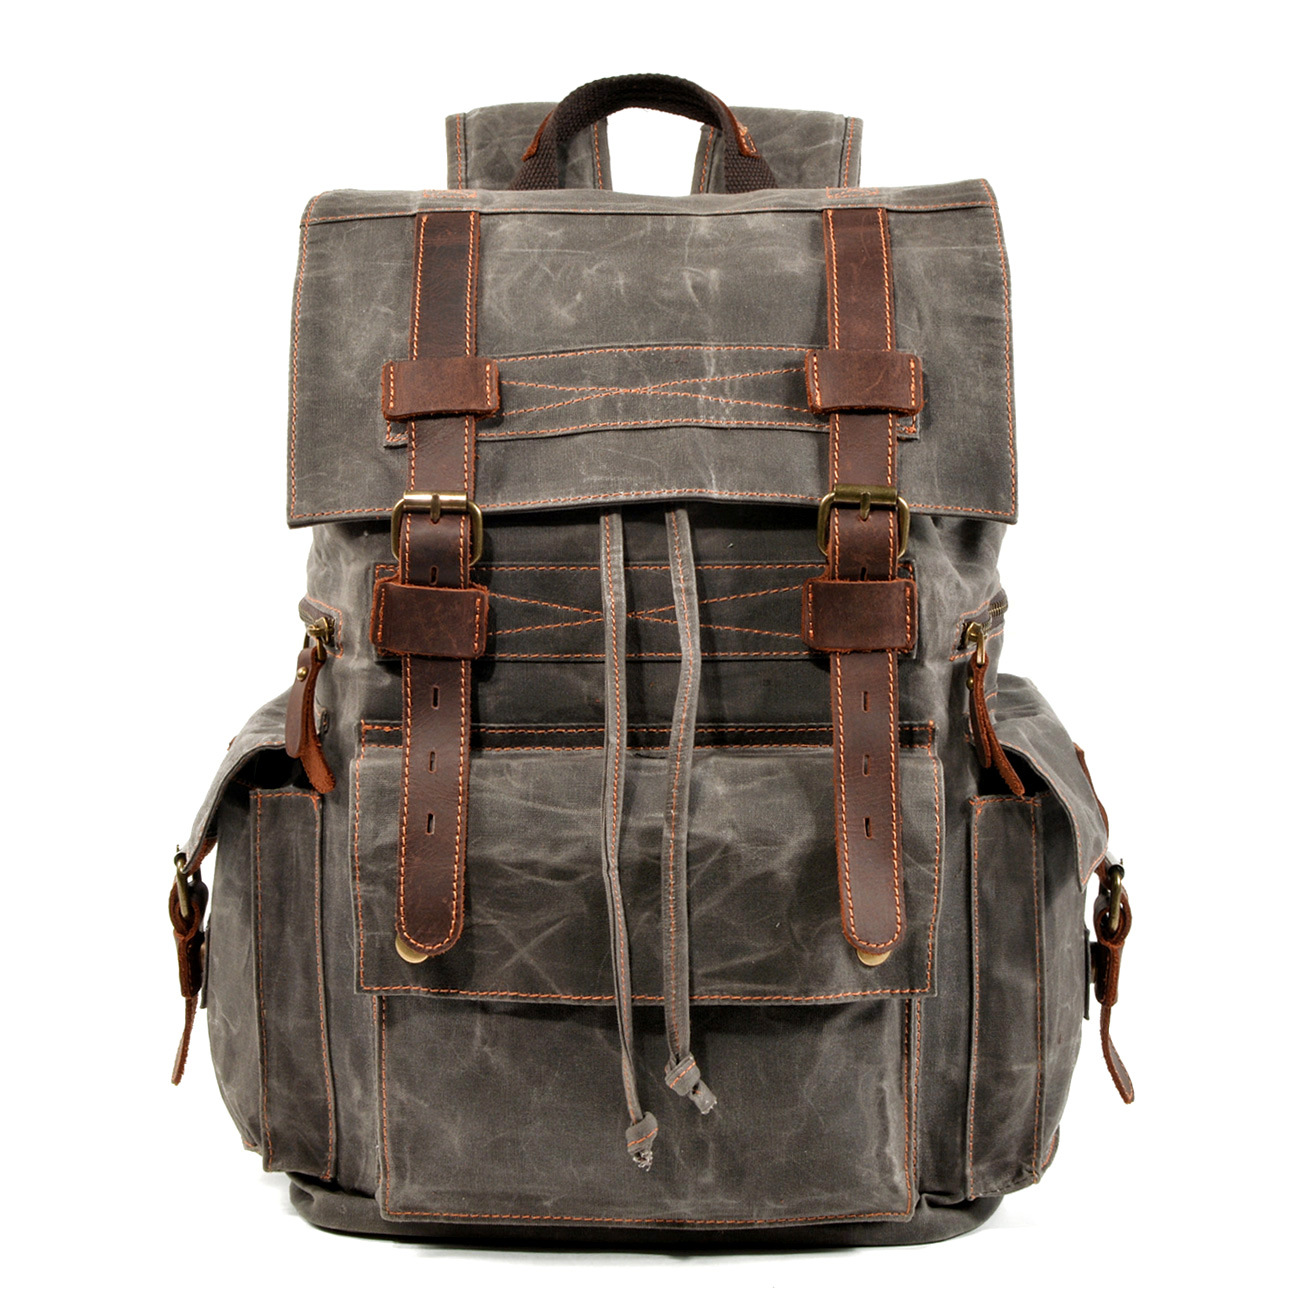 Retro crazy horse leather men's backpack large capacity 15.6 inch laptop shoulder bag first layer leather male travel backpack